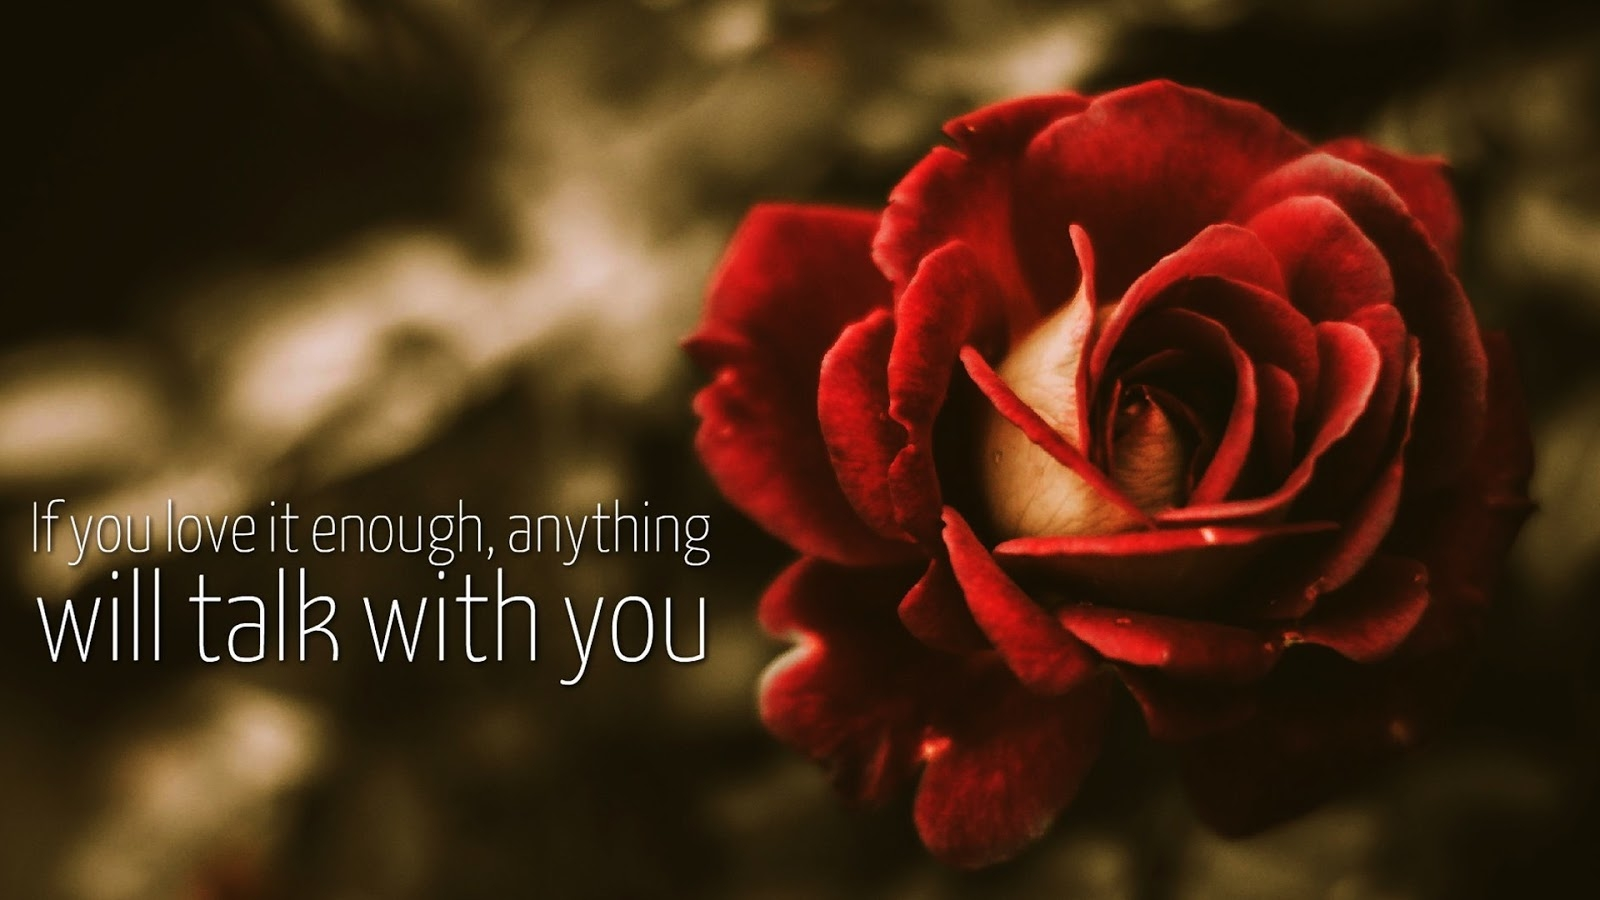 best-images-of-love-download-HD-Love-Images-With-Love-Quotes-Images-And-Love-Couple-Images-Best-wallpaper-wp3603282